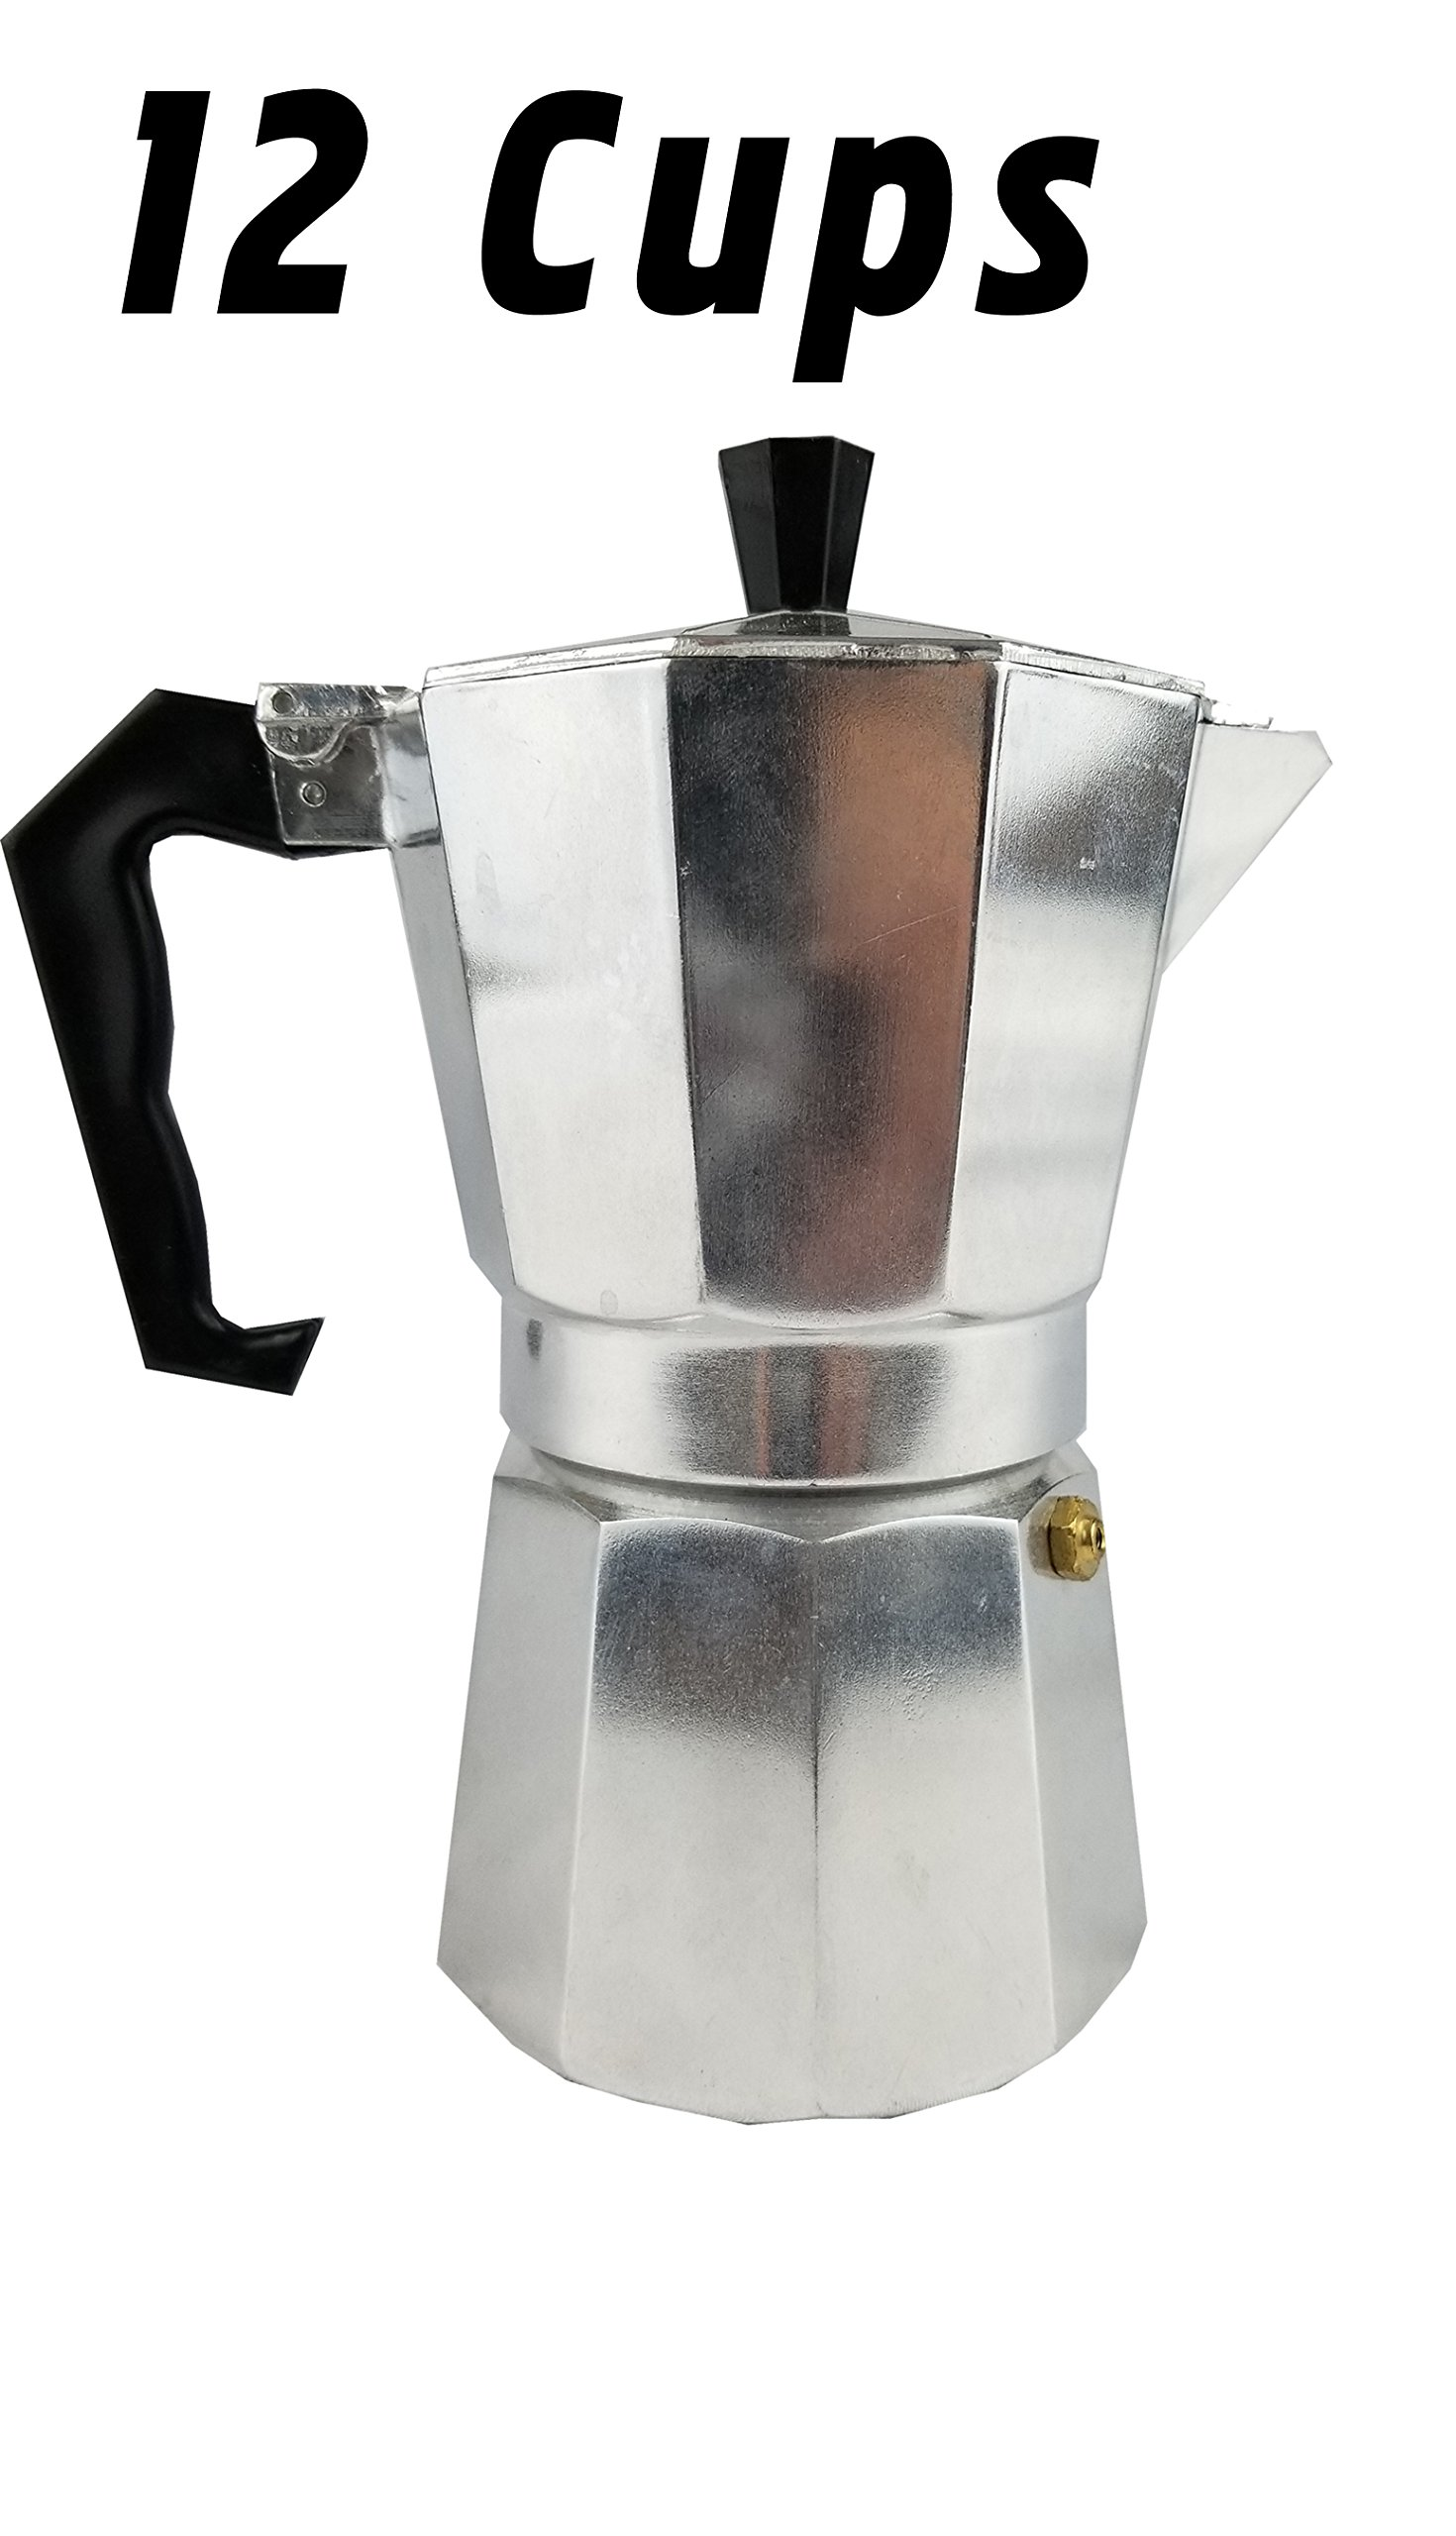 Uniware Aluminum Expresso Coffee Pot (12 Cups)